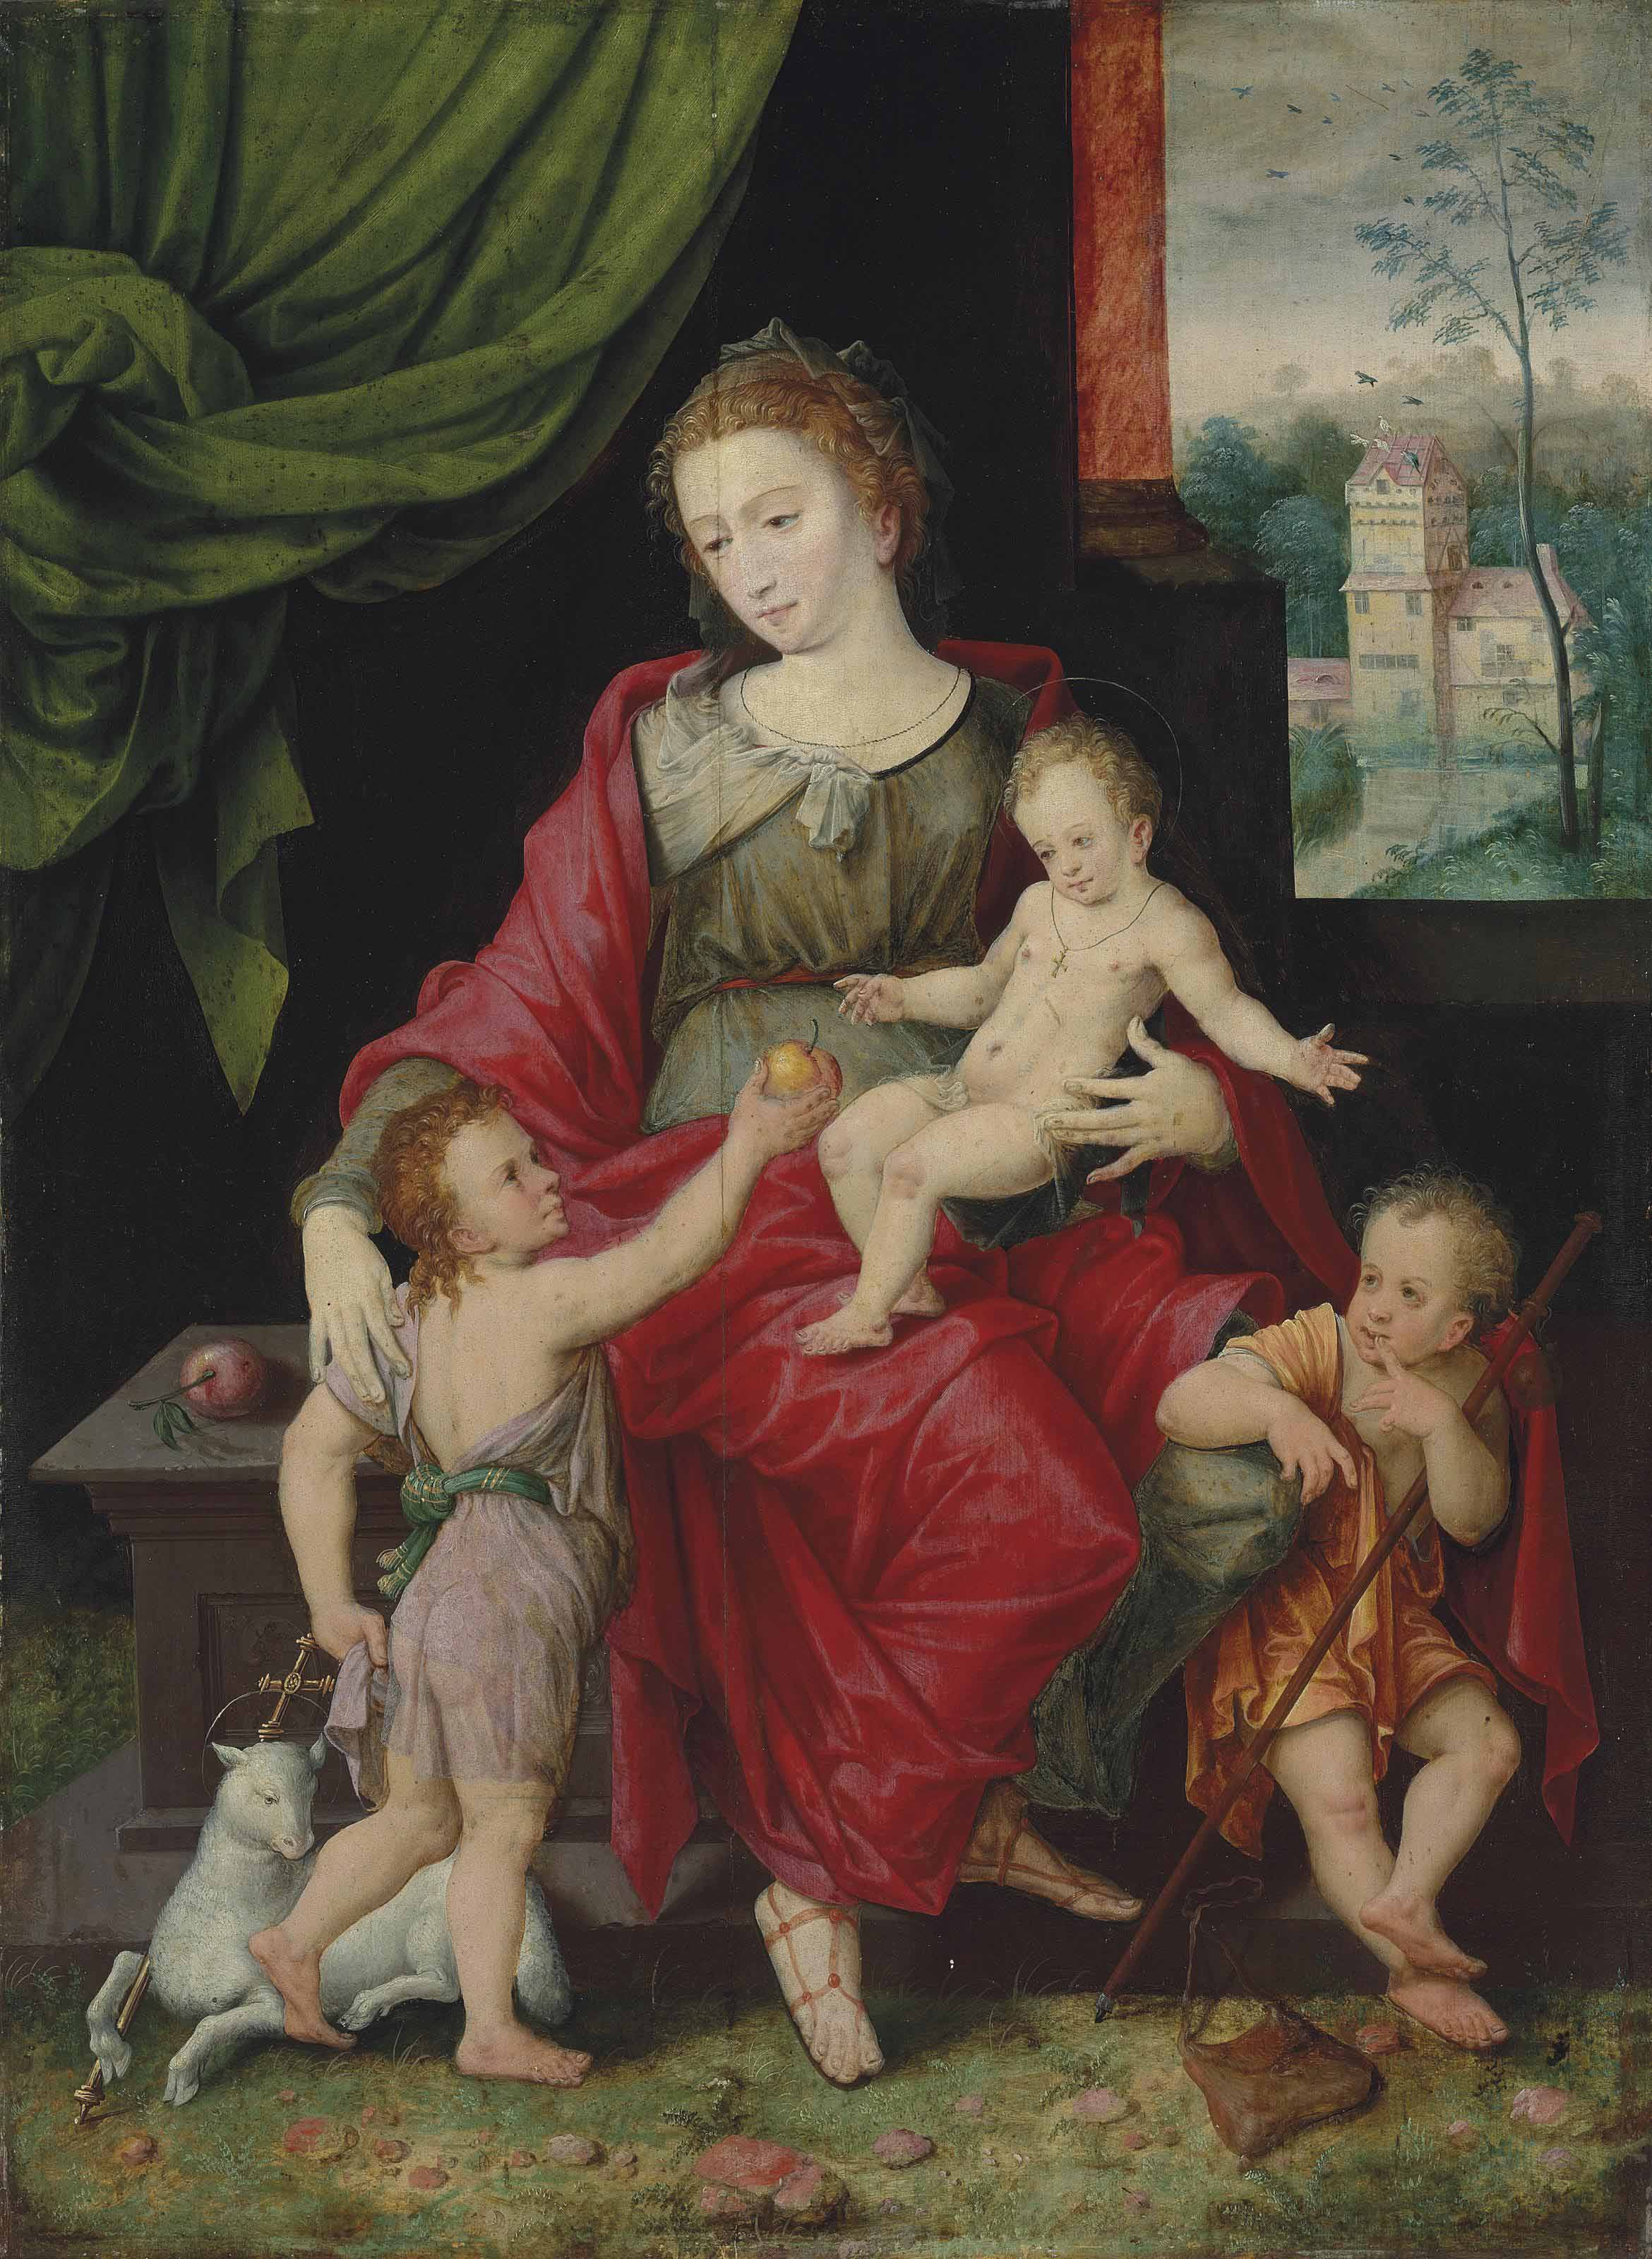 The Virgin and Child with the Infants Saint John the Baptist and James, before a draped curtain, a landscape beyond